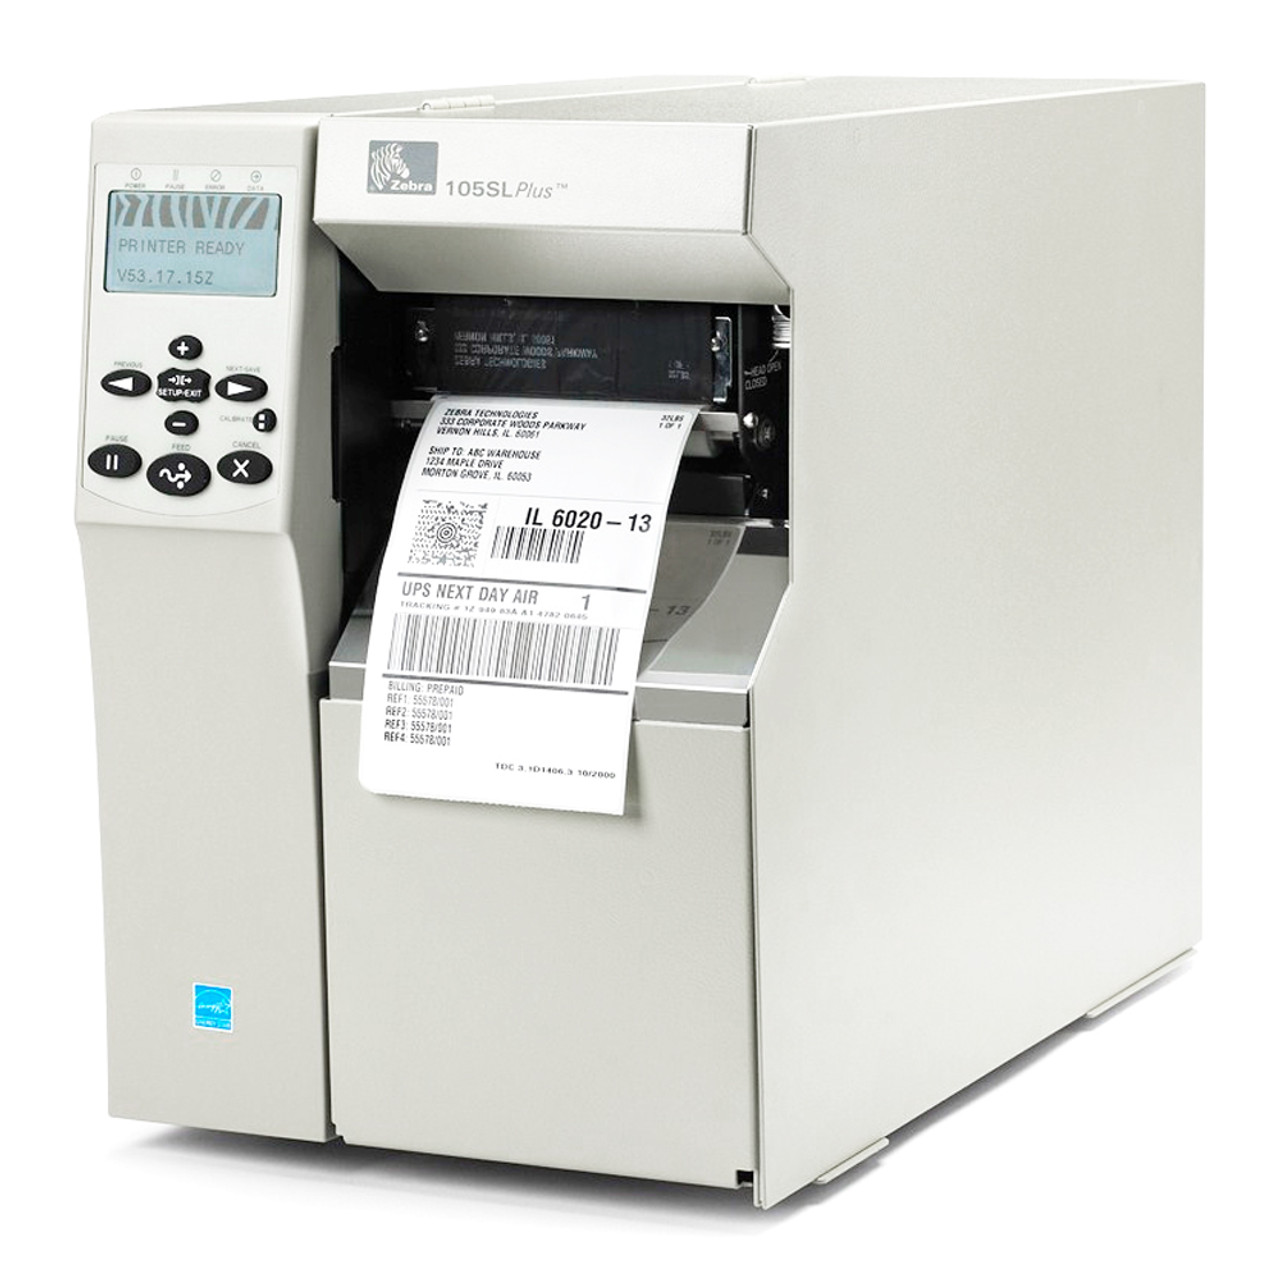 Zebra S Series 105SL B/W Direct Thermal Printer